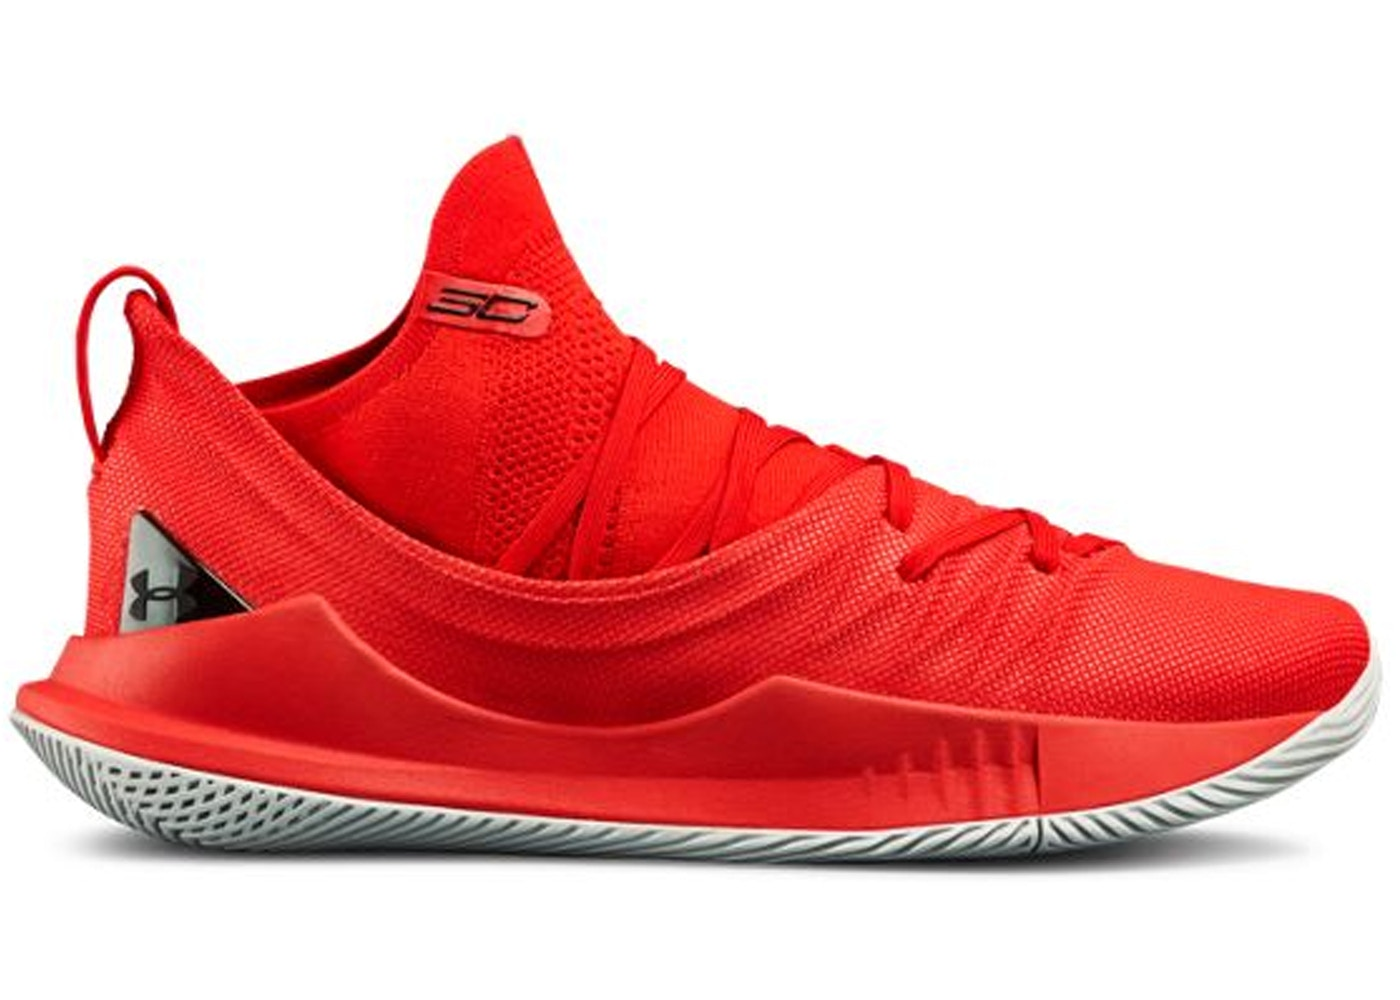 63f62385c62e Under Armour Curry 5 Wired Different - 3020657-600